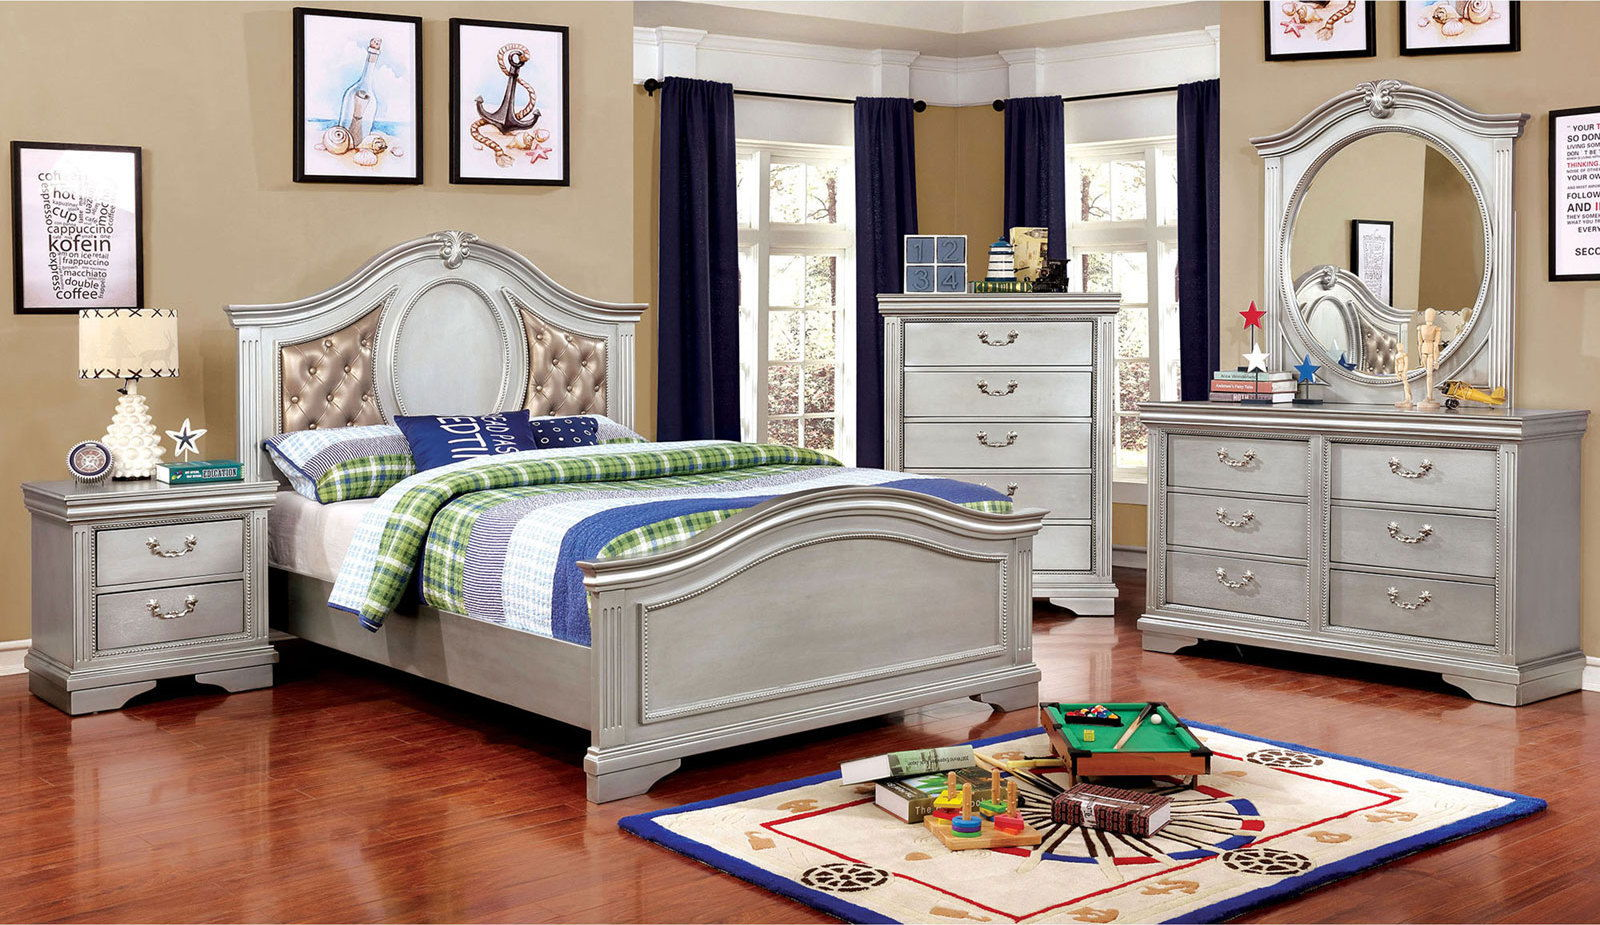 CLAUDIA - 4 Pc. Full Bedroom Set - Silver